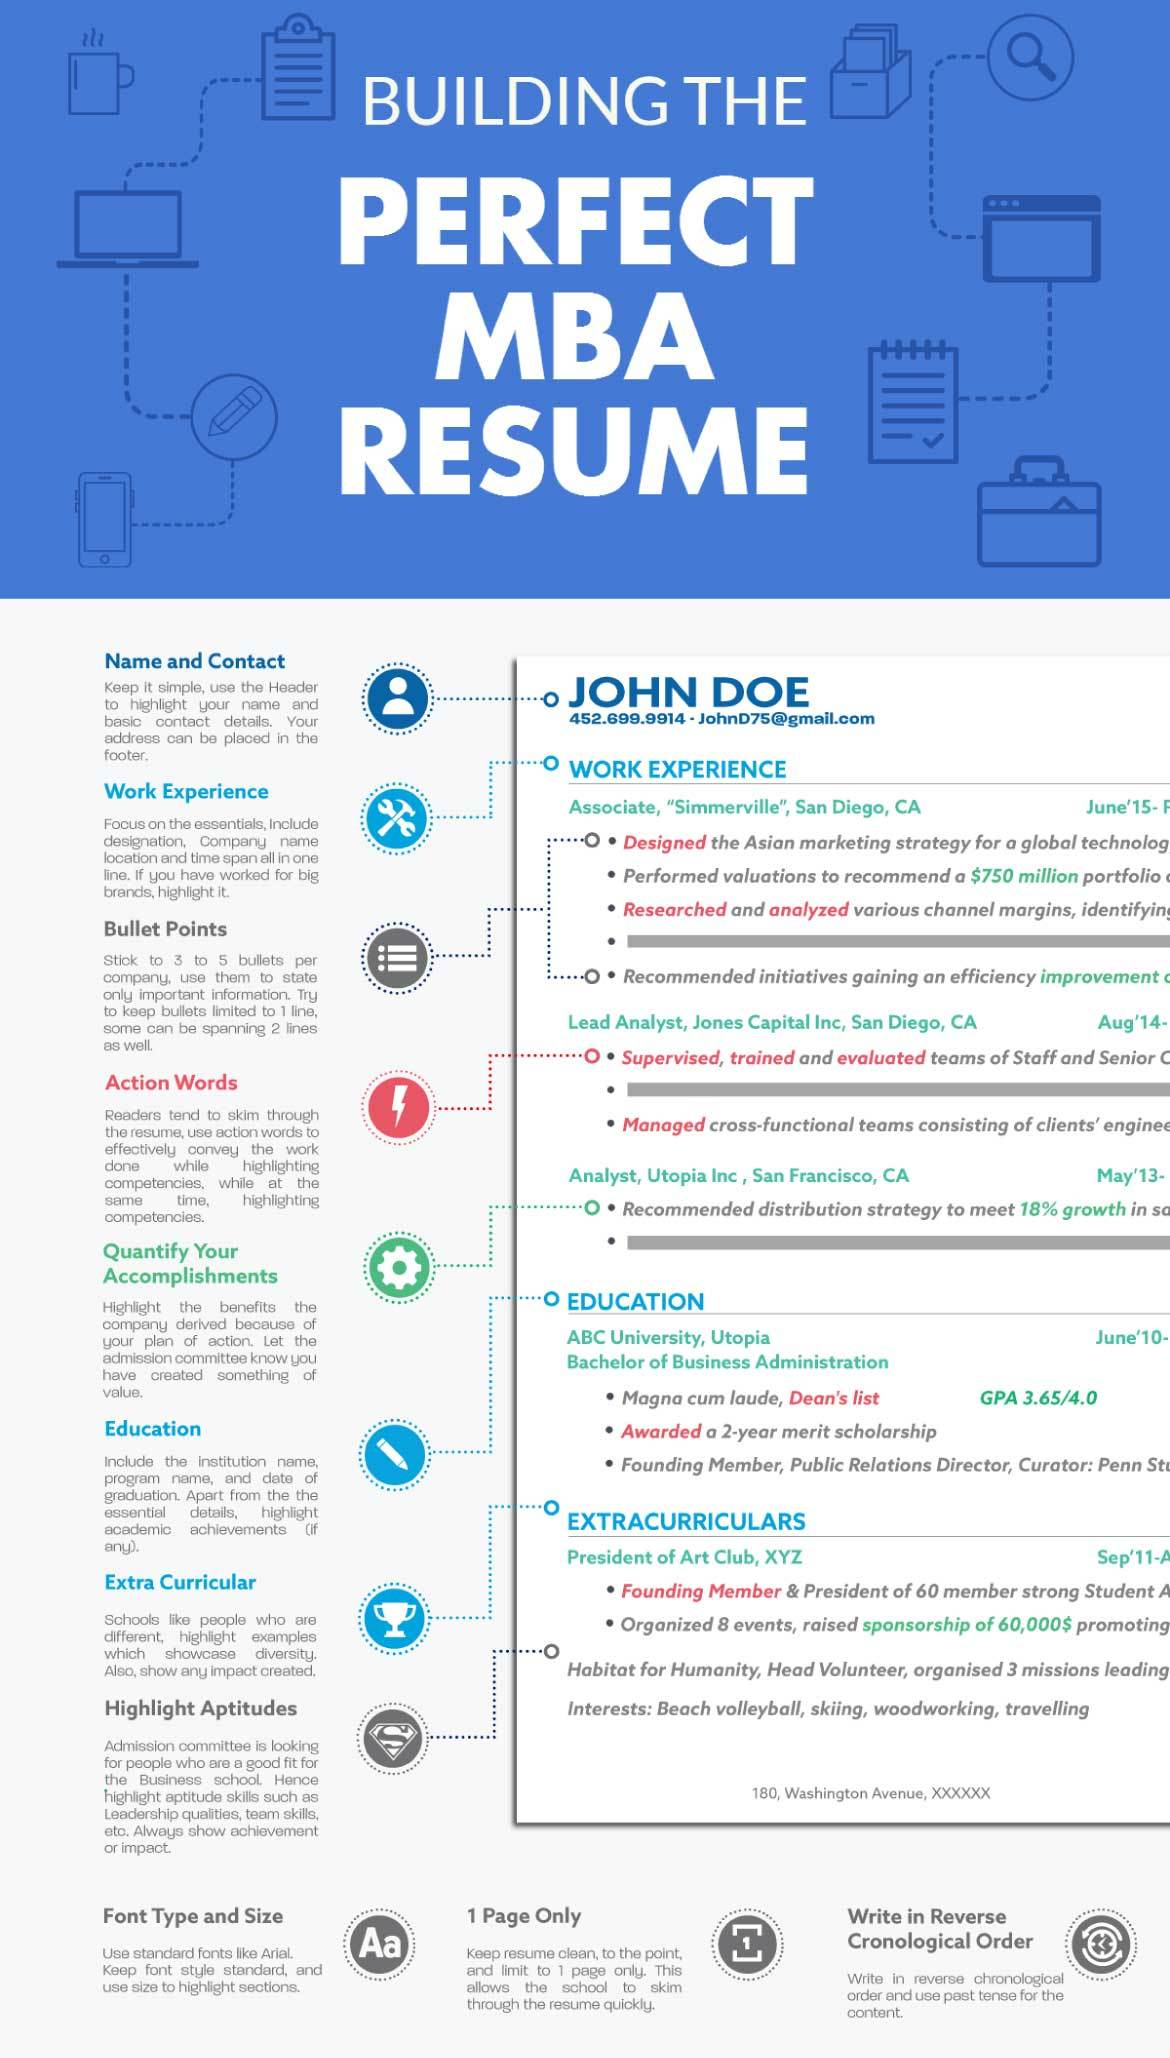 10 steps towards creating the perfect mba resume infographic - Resume For Mba Application